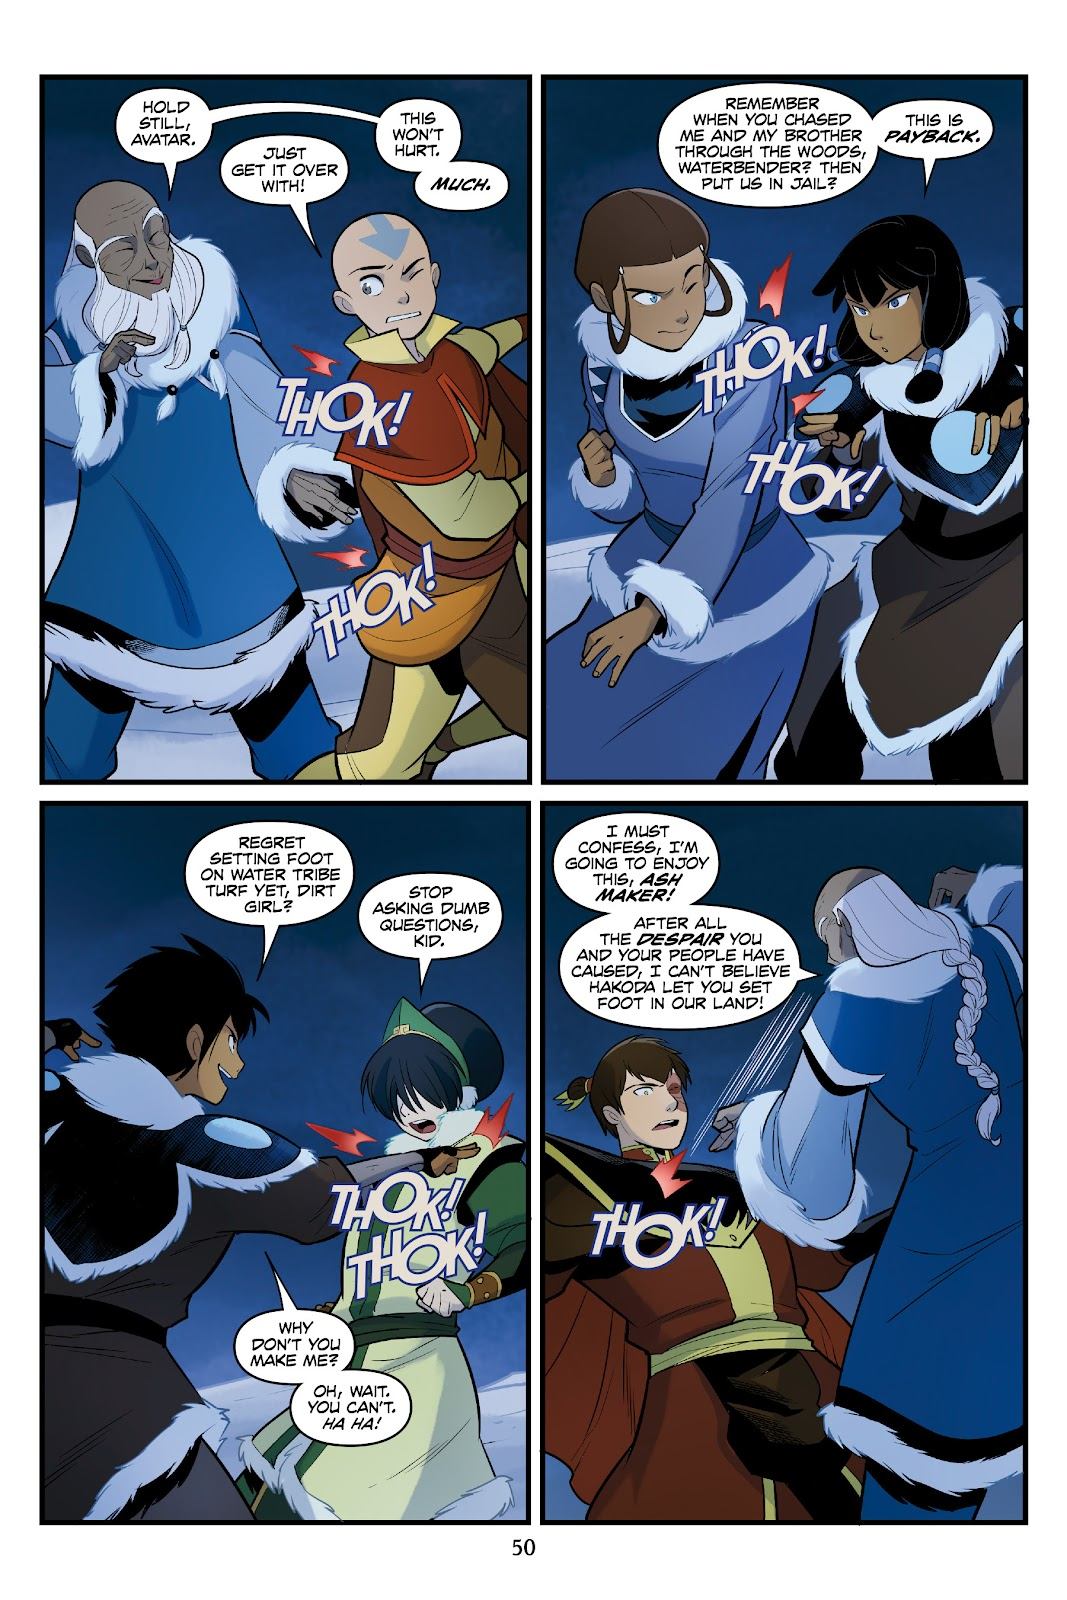 Nickelodeon Avatar: The Last Airbender - North and South issue 3 - Page 50